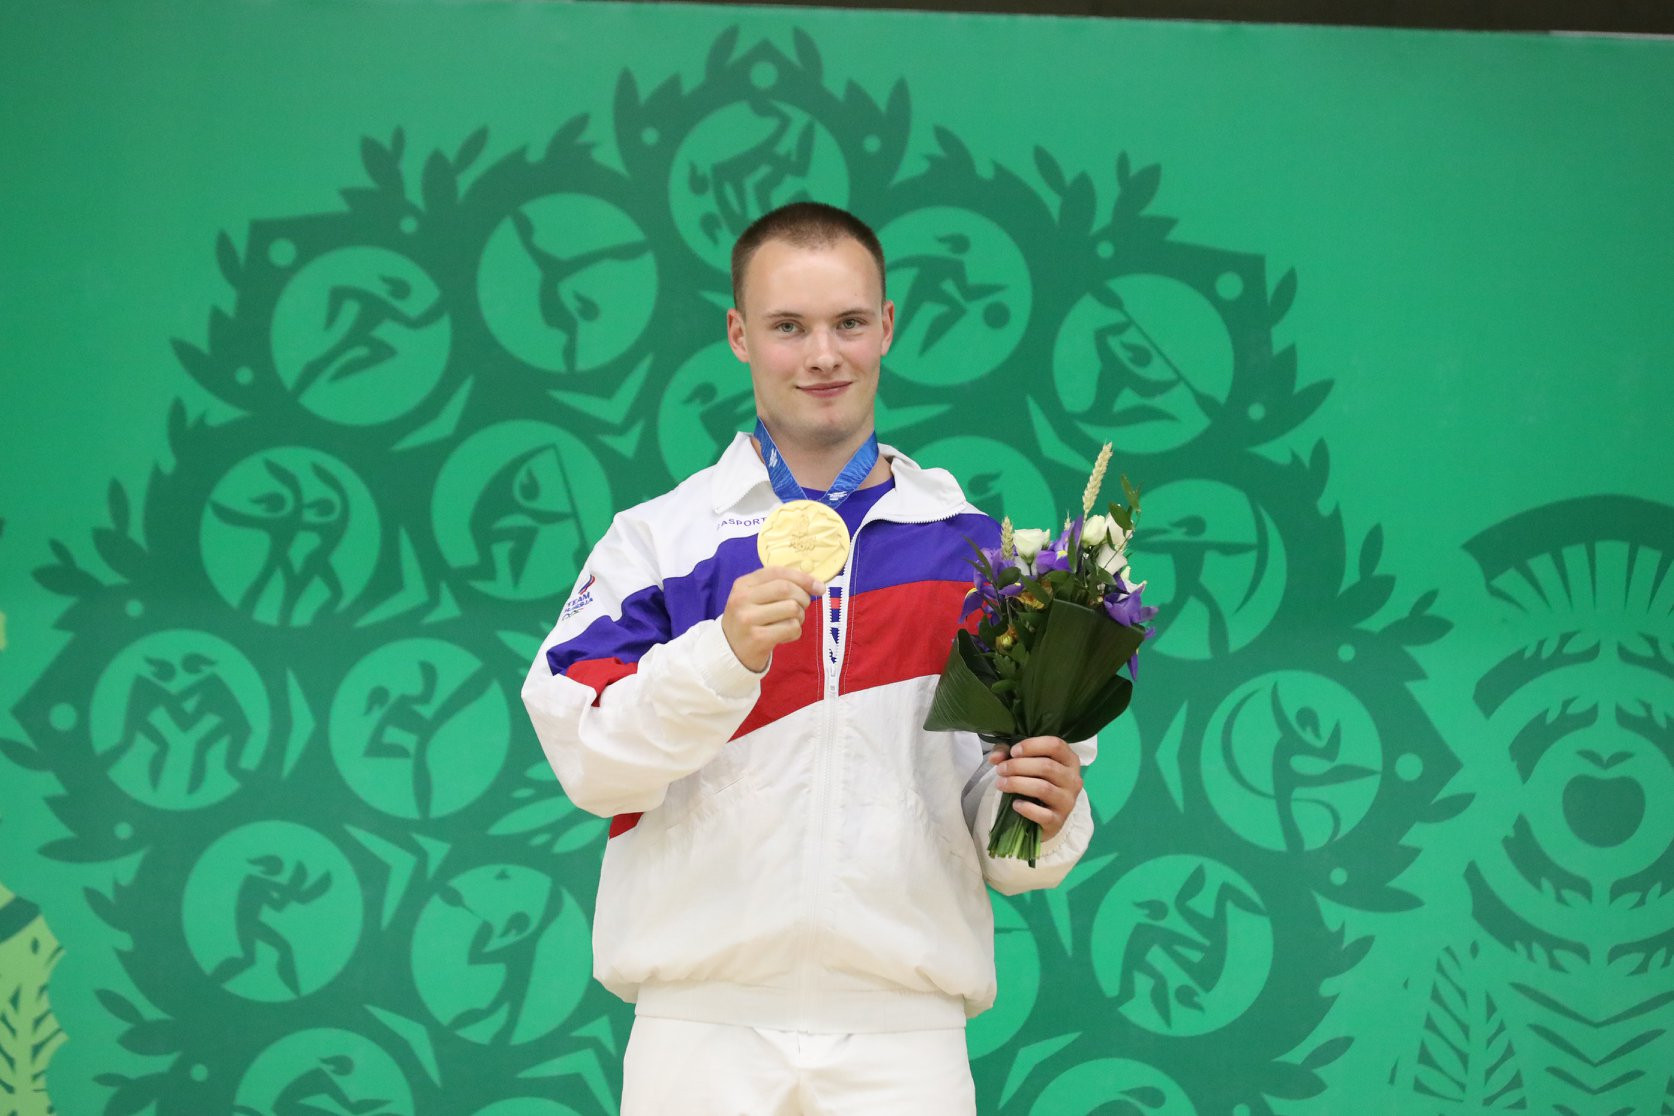 He had triumphed in the men's 10 metre air pistol event ©Minsk 2019